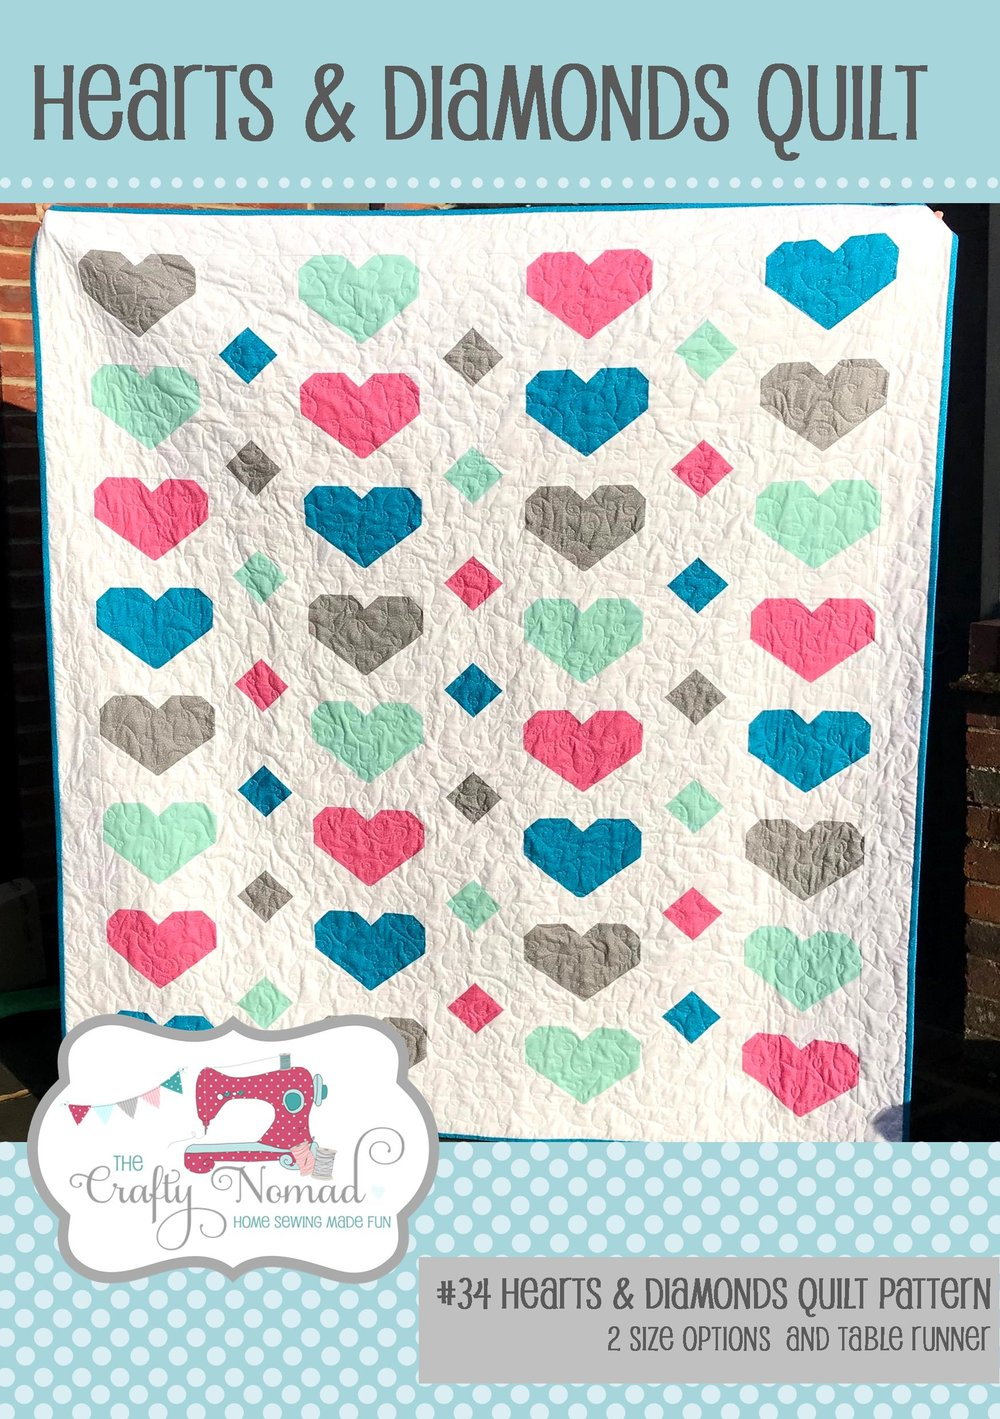 Hearts and Diamonds Front Page The Crafty Nomad.jpg